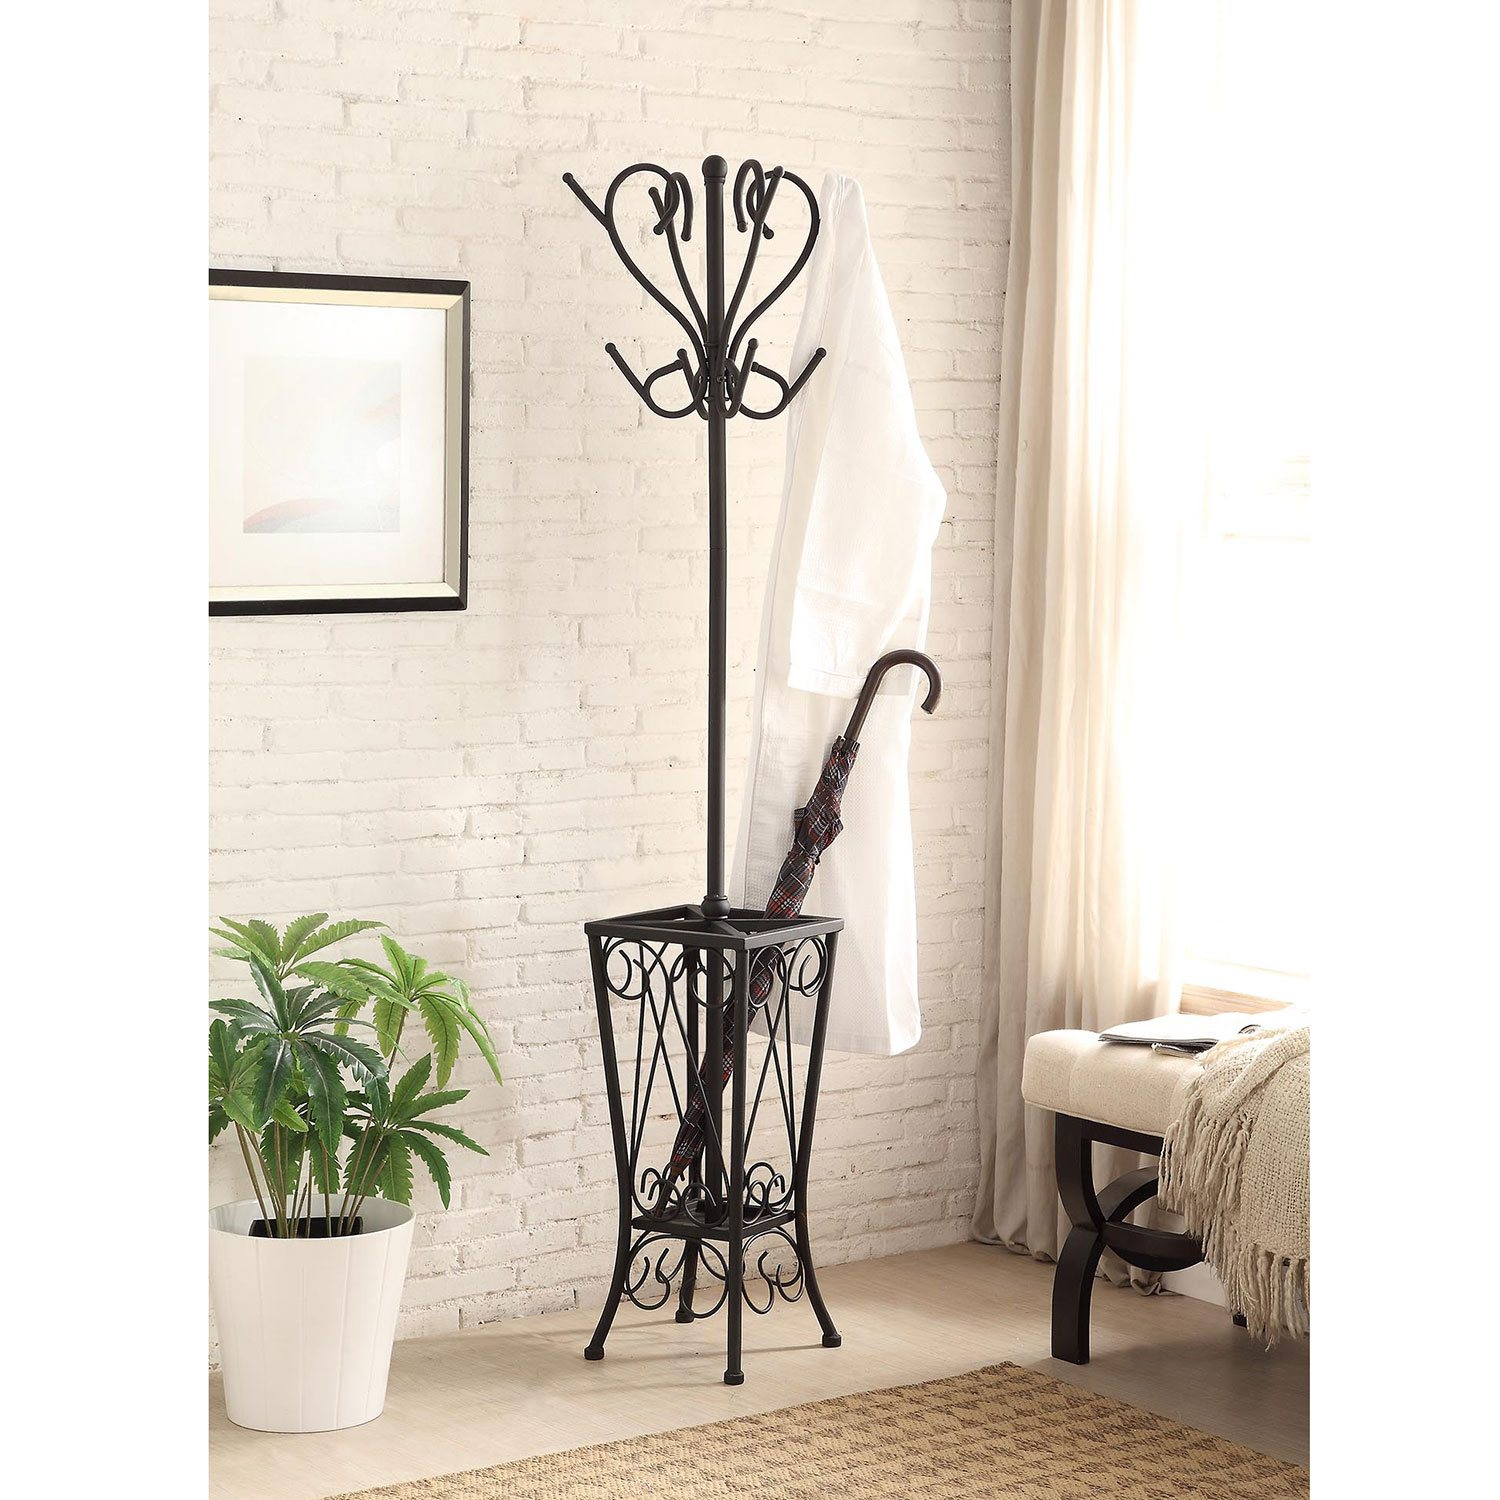 Ikea Hallway Umbrella Stand ~   Elegant Coat Rack Hall with Umbrella Stand by Kipling BRAND NEW  eBay